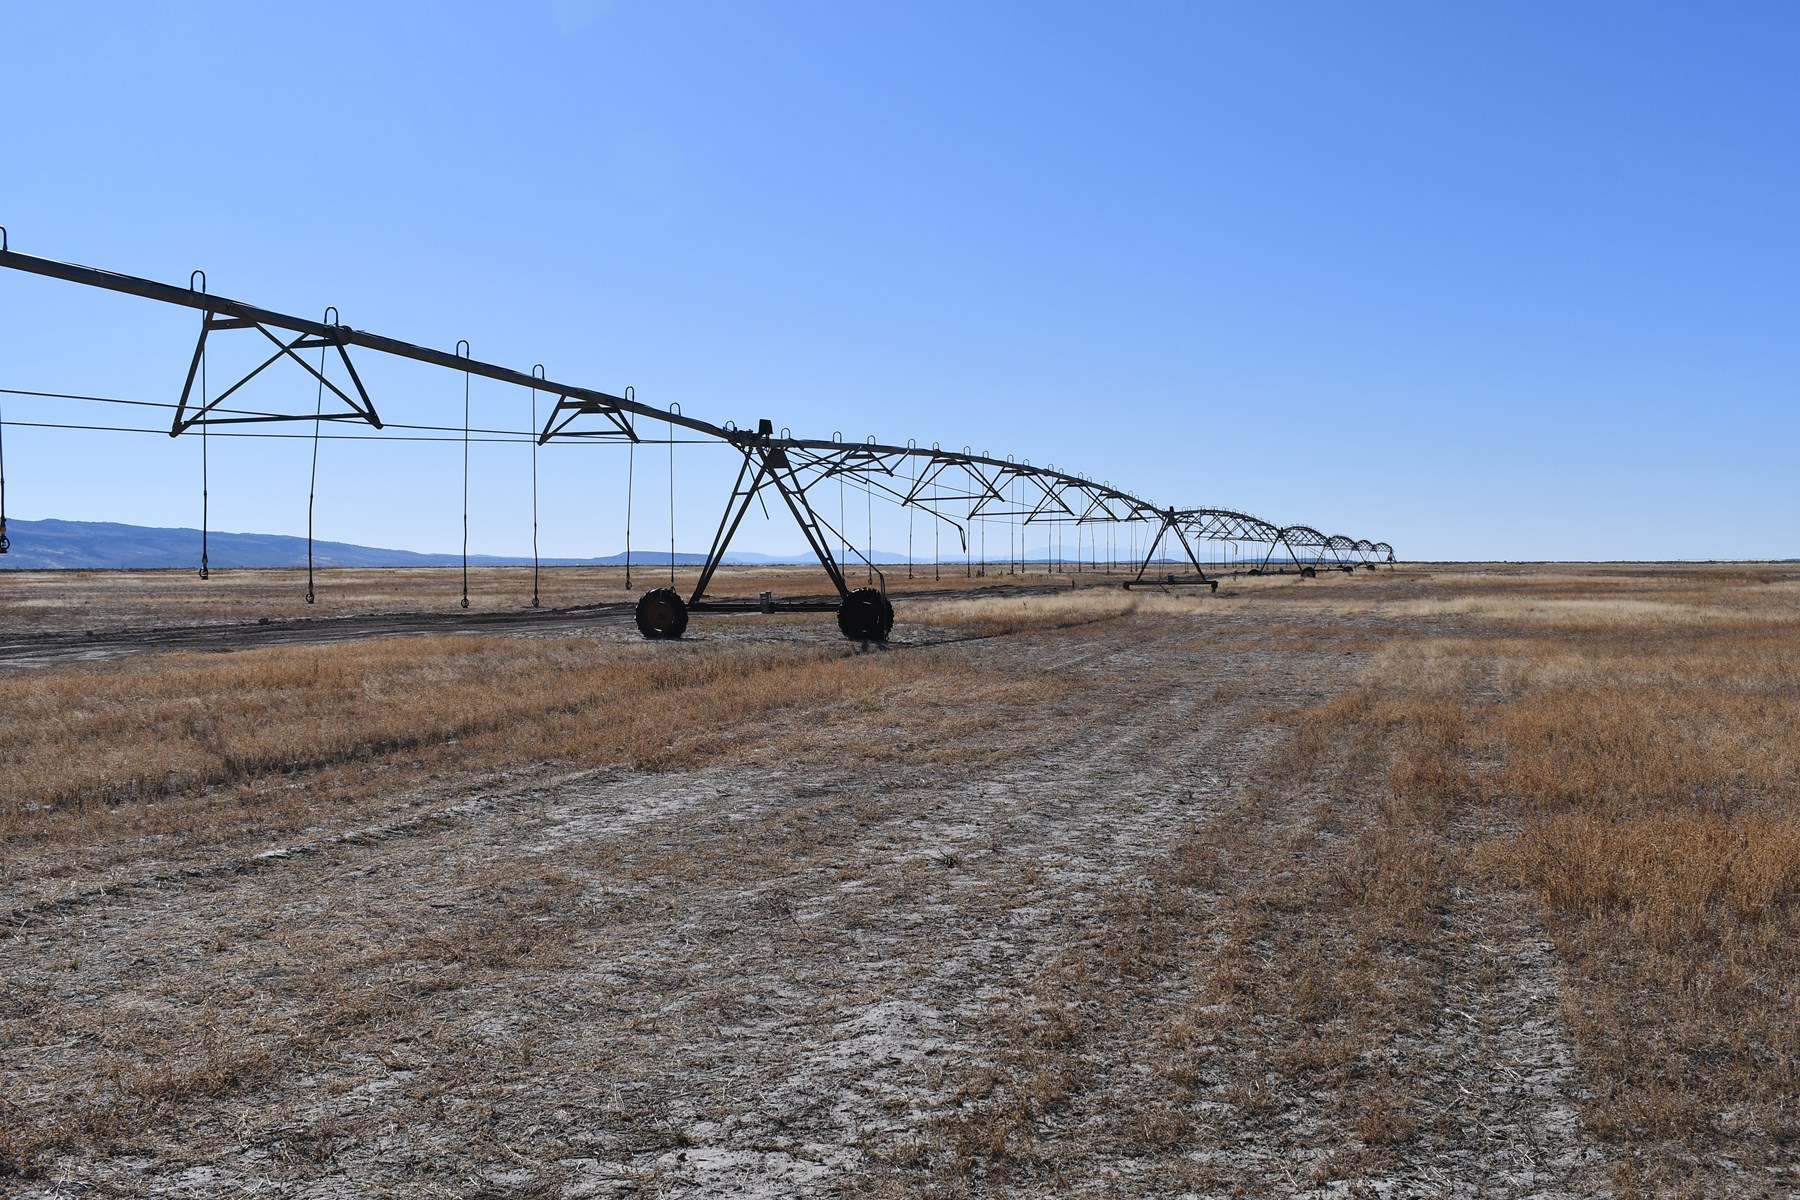 PIVOT IRRIGATED ACREAGE FOR SALE